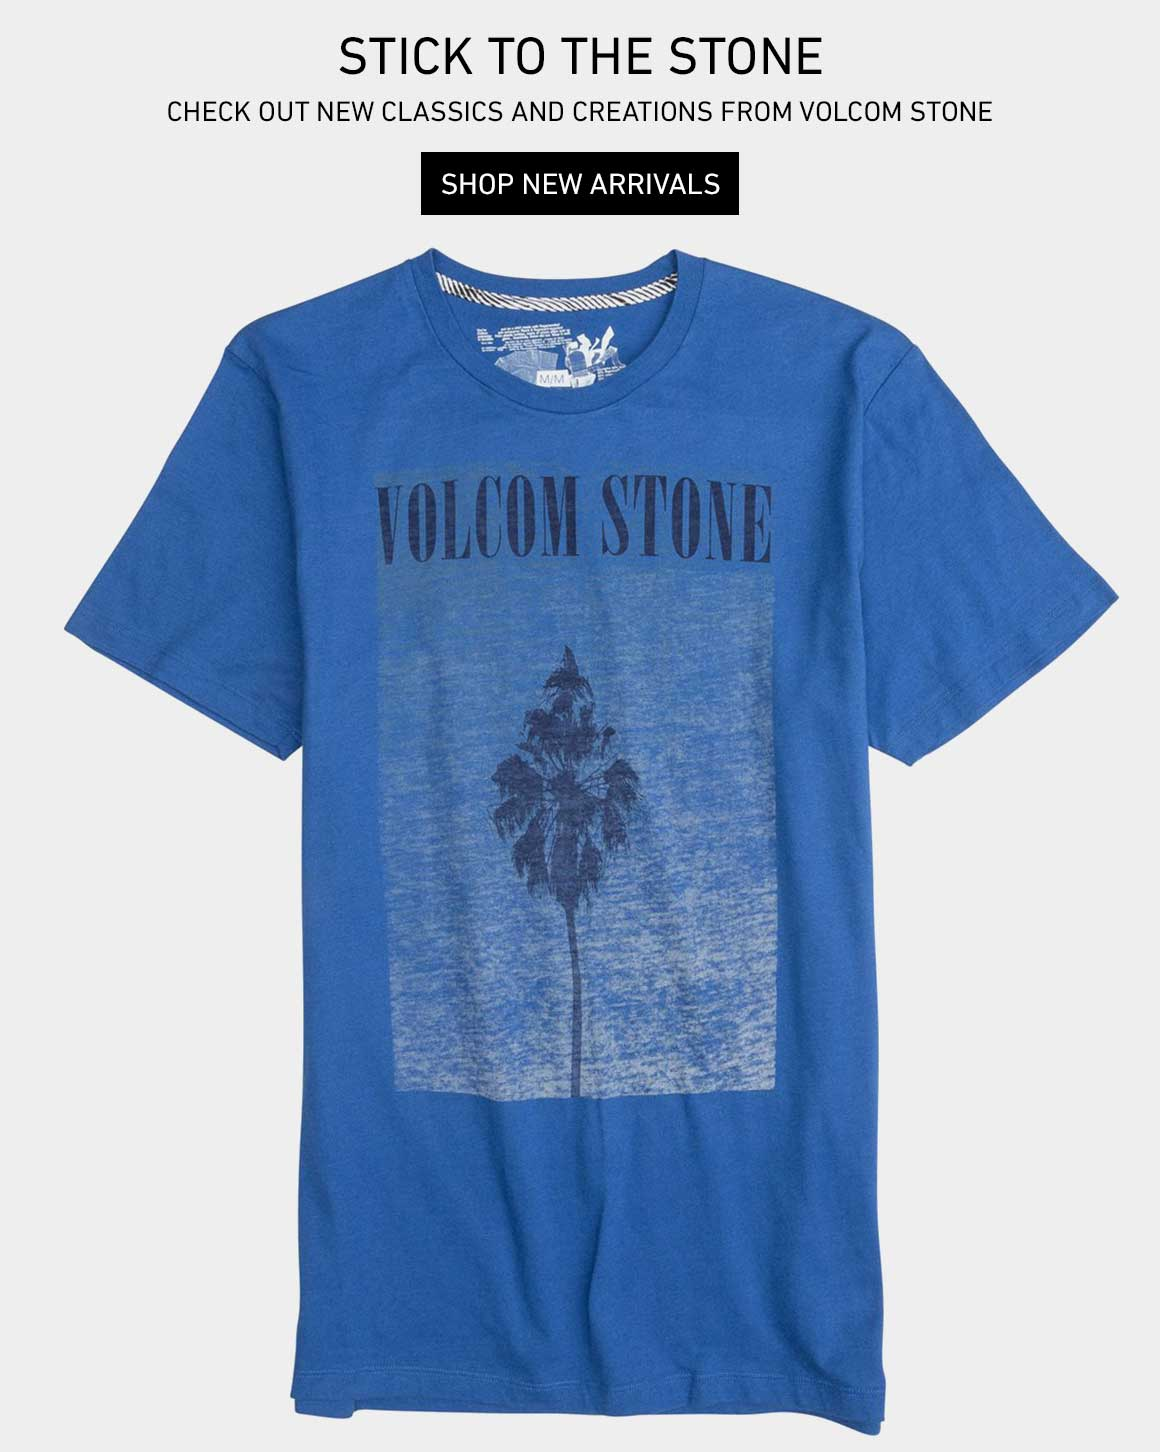 Stick to the Stone: Shop New Volcom